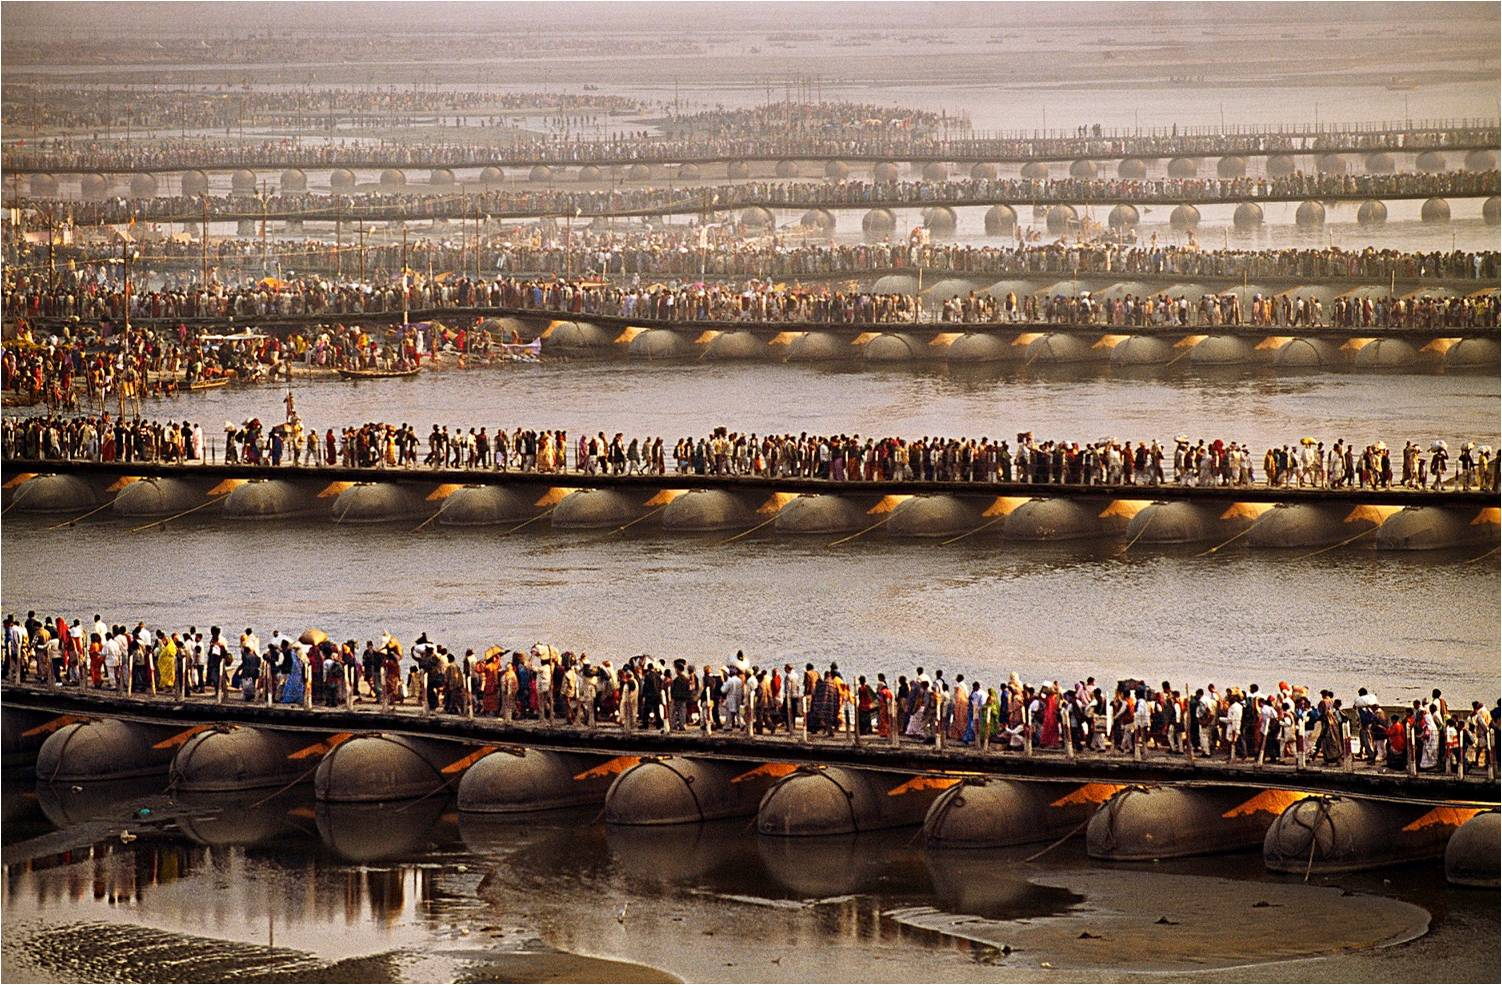 Crowds gather for the Kumbh Mela, 2001. (Photograph by Steve McCurry. Courtesy Phaidon/Roli Books)